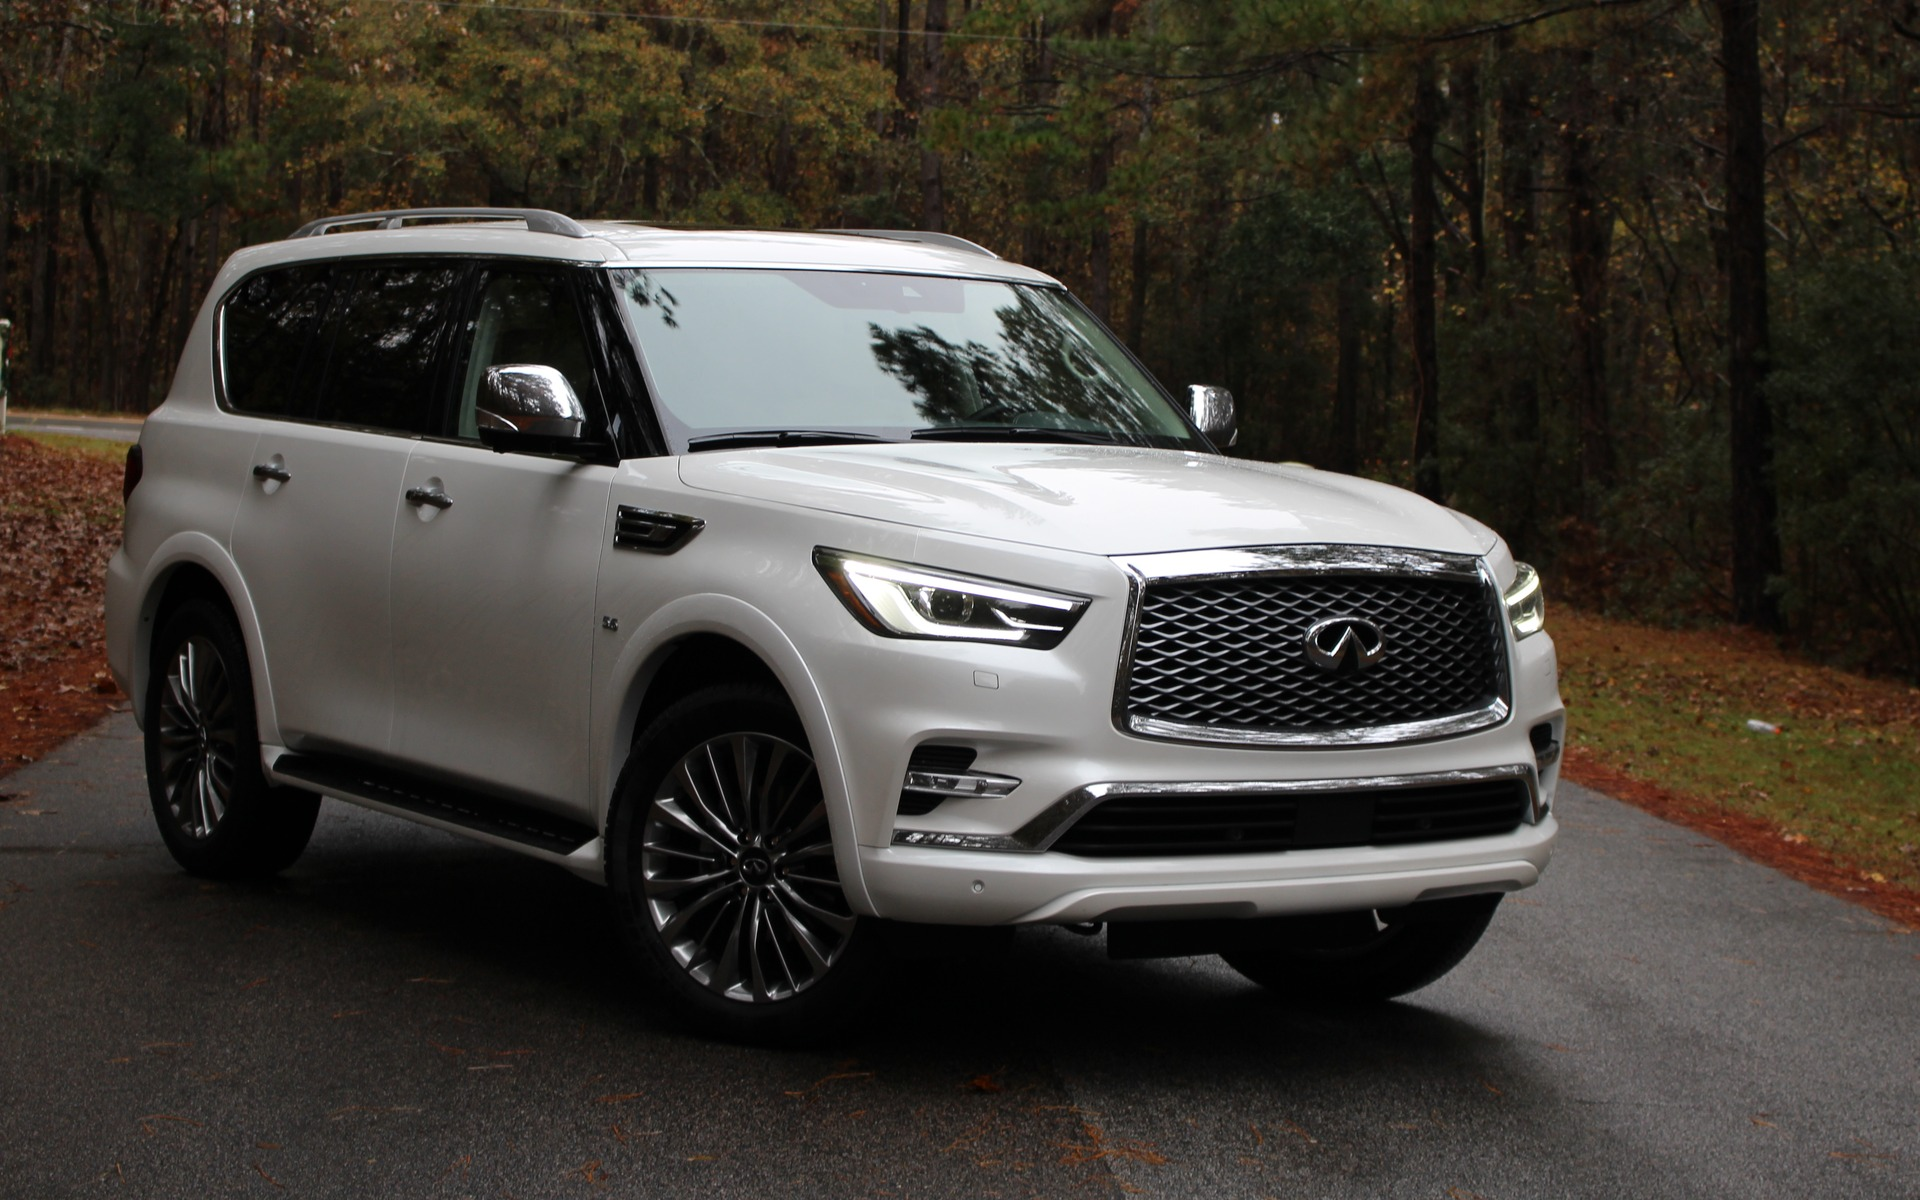 2018 Infiniti QX80: News, Design, Features, Price >> 2018 Infiniti Qx80 Sweetening The Deal The Car Guide